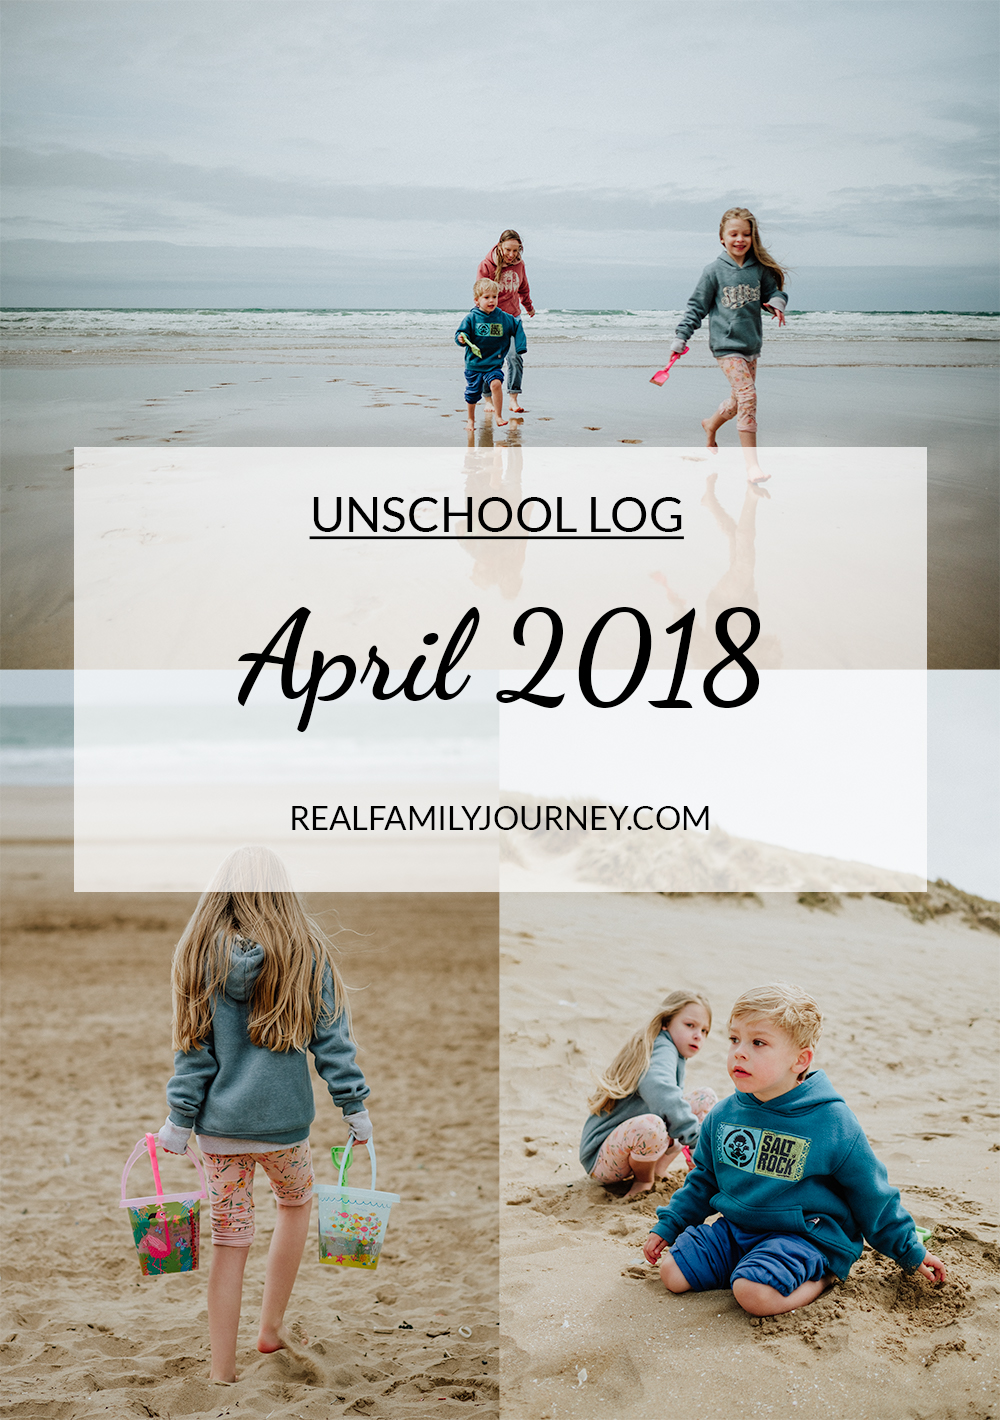 Unschool log April 2018 www.realfamilyjourney.com